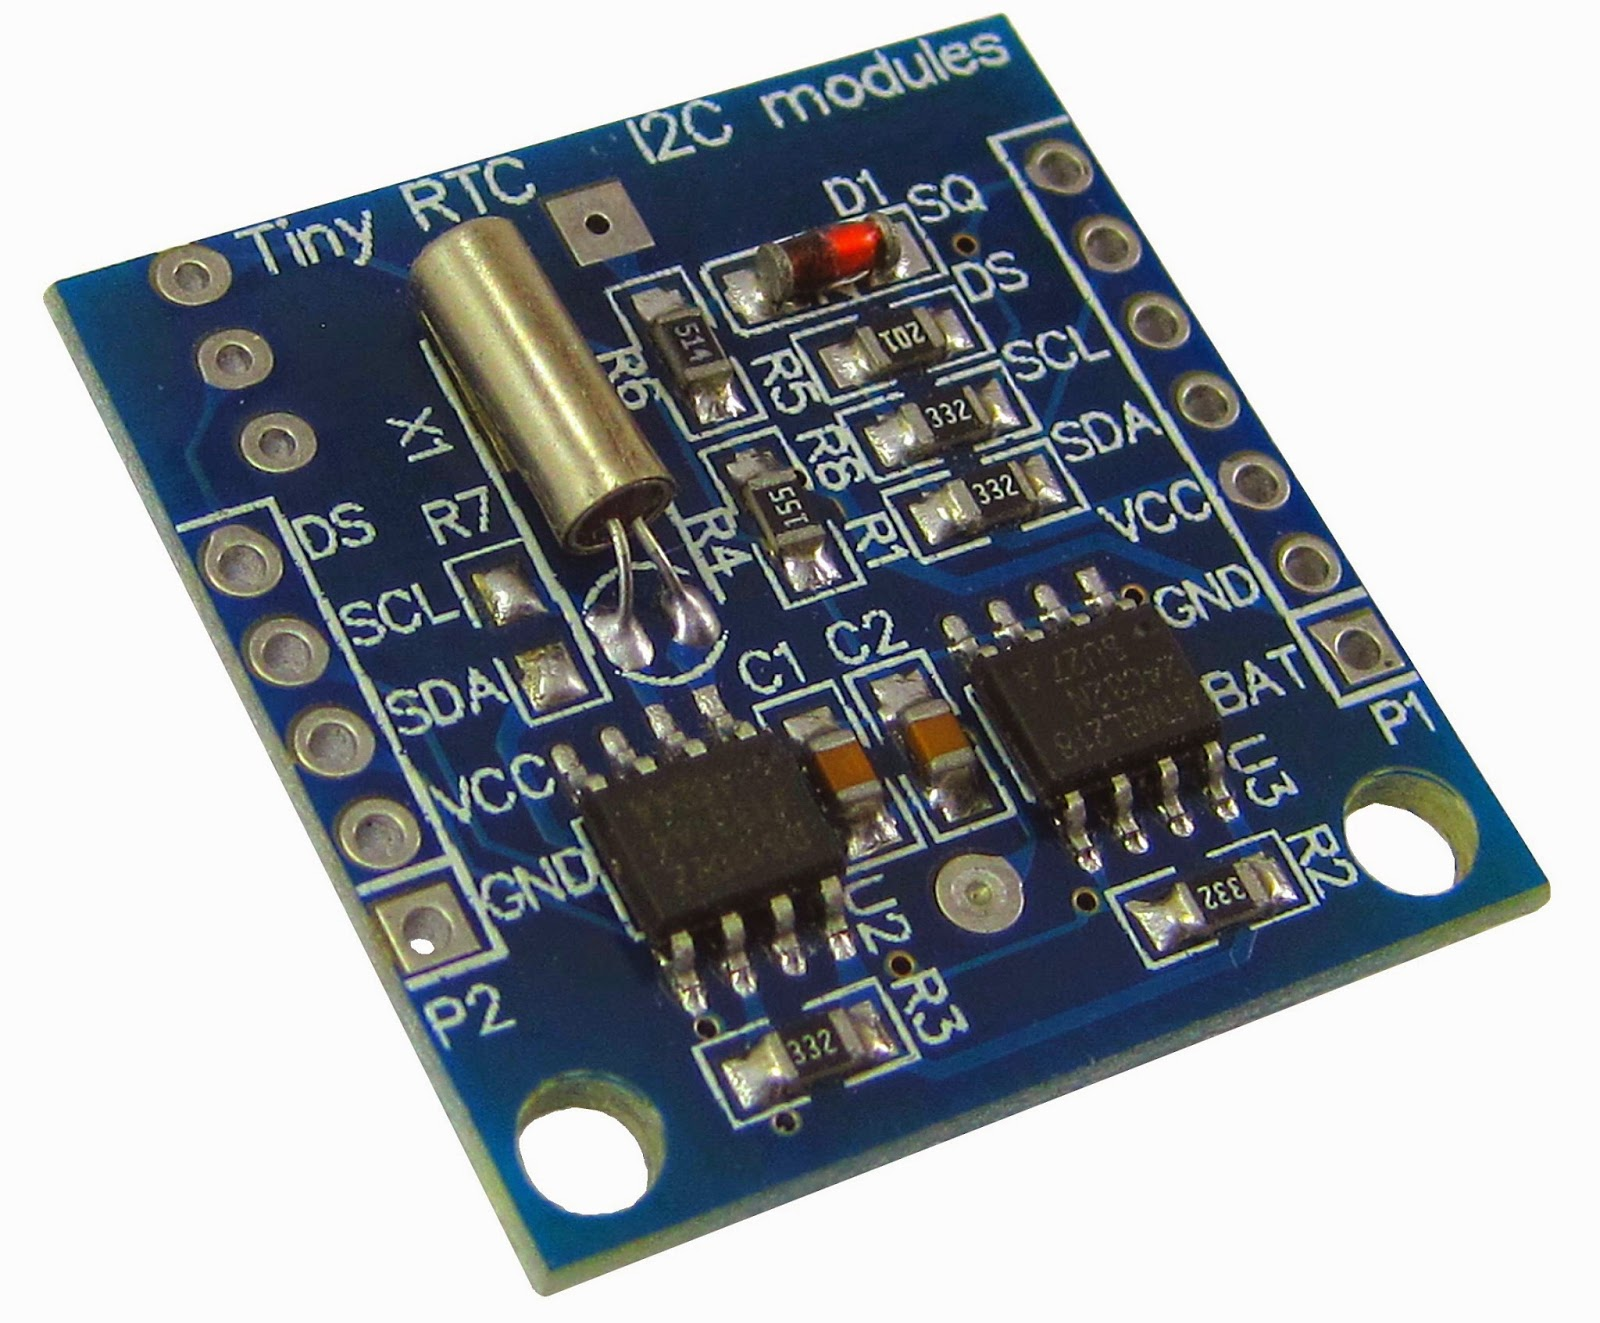 rtc ds1307 timer component precision electrical world rtc ds1307rtc ds1307 timer component precision